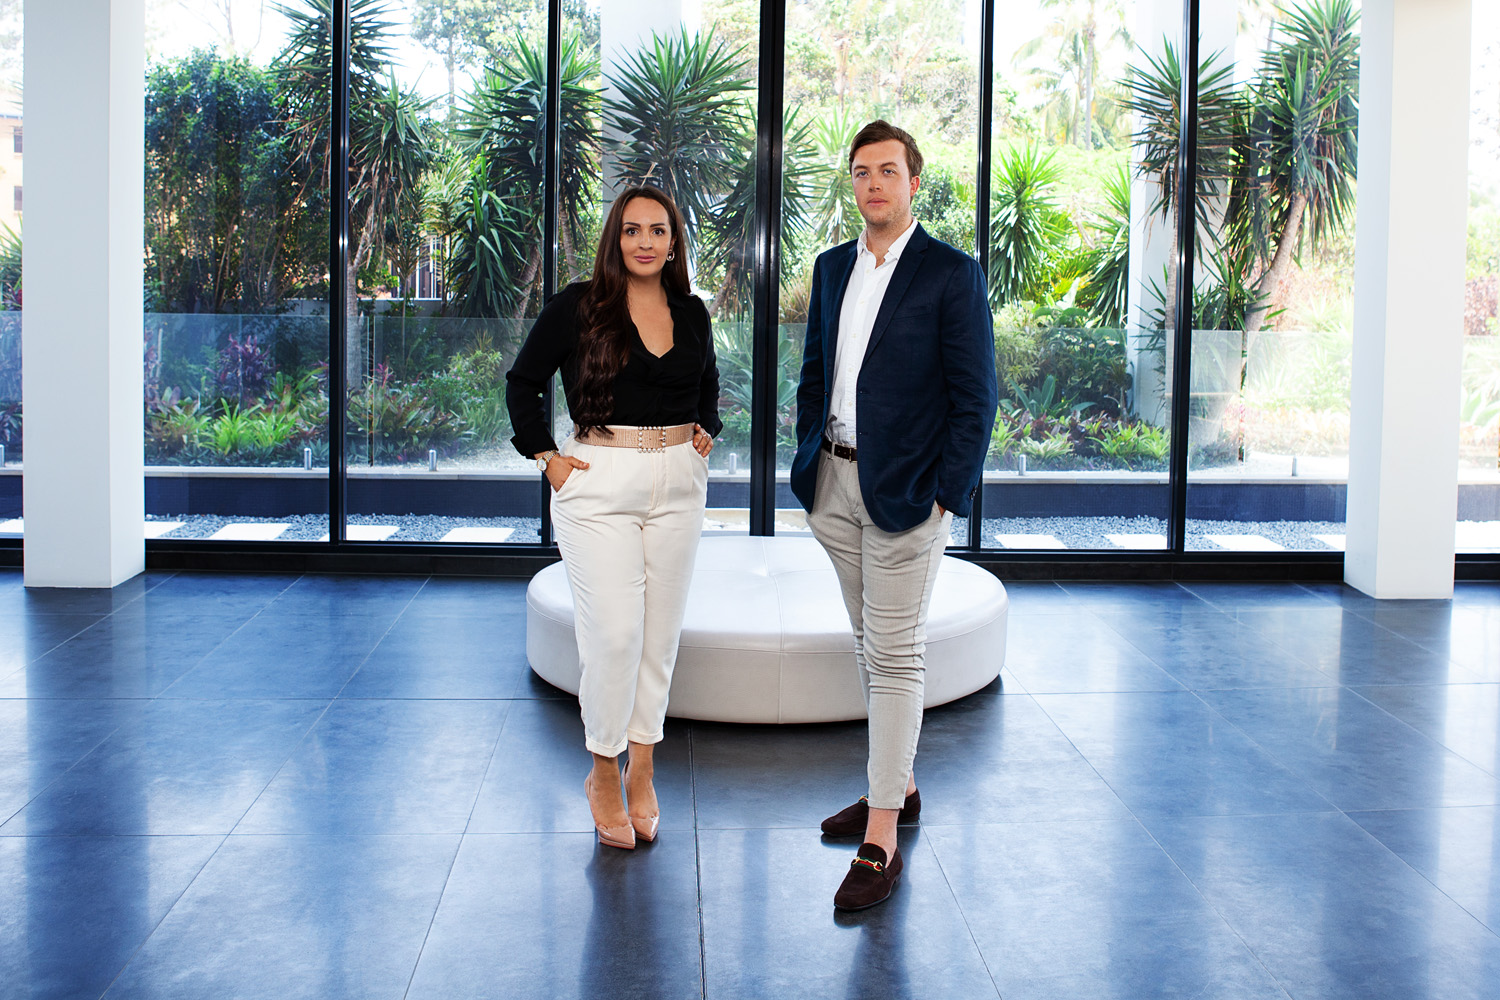 lucy johnston and craig johnston award winners; @lananoir; @lucyjohnston_x; lana noir; lana noir photographer; lana noir photography; lananoir; lucy johnston; gold coast; award winners; tclh; gold coast tourism; destination gold coast